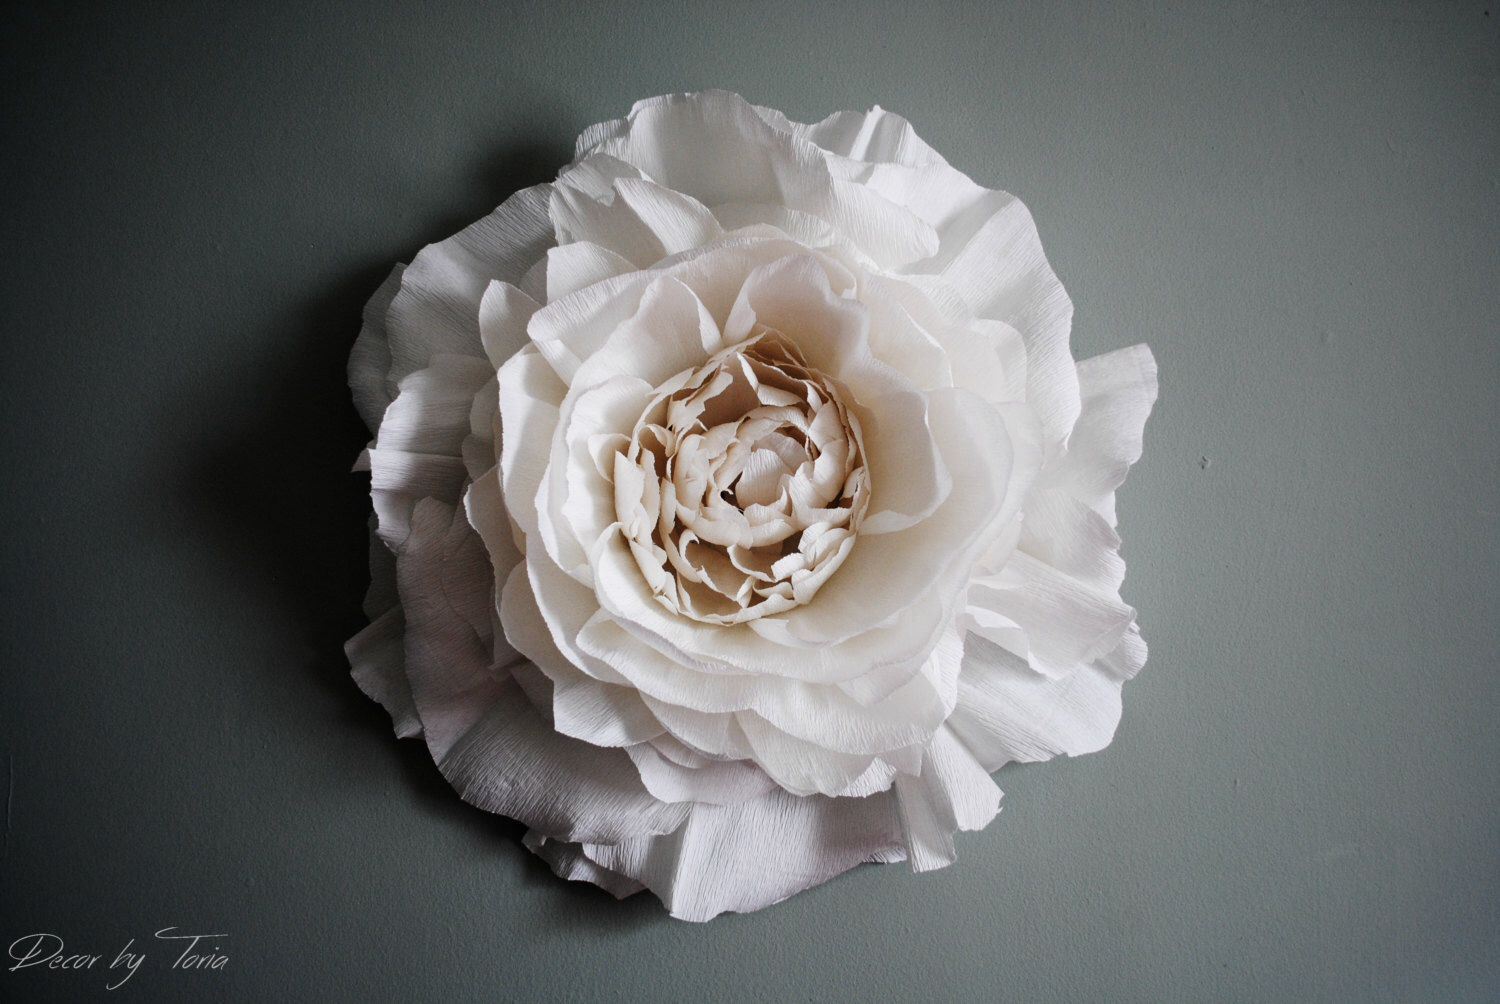 Paper wedding decoration ideas   Inch Giant Crepe Paper Peony Wall Flower Home Wedding Decor by